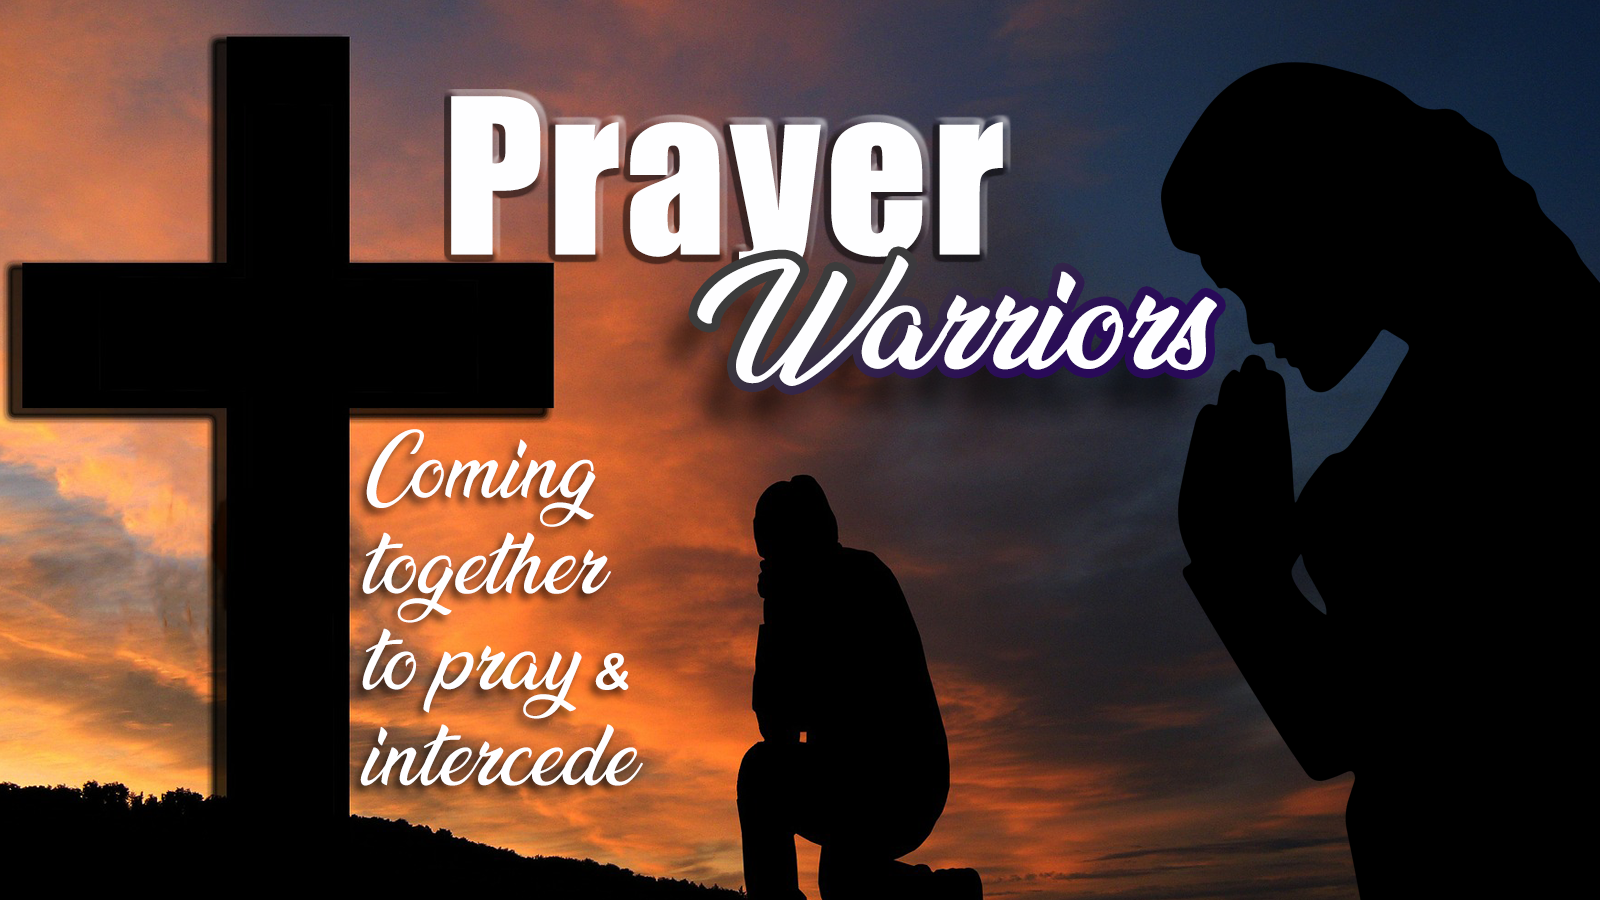 Coming together to pray and intercede 1st Thursday Monthly 6:30pm @ 333 Lineage Ln, Walterboro Contact: Denise 843-908-4499 (In addition to monthly prayer meeting this group goes out into the community weekly.)